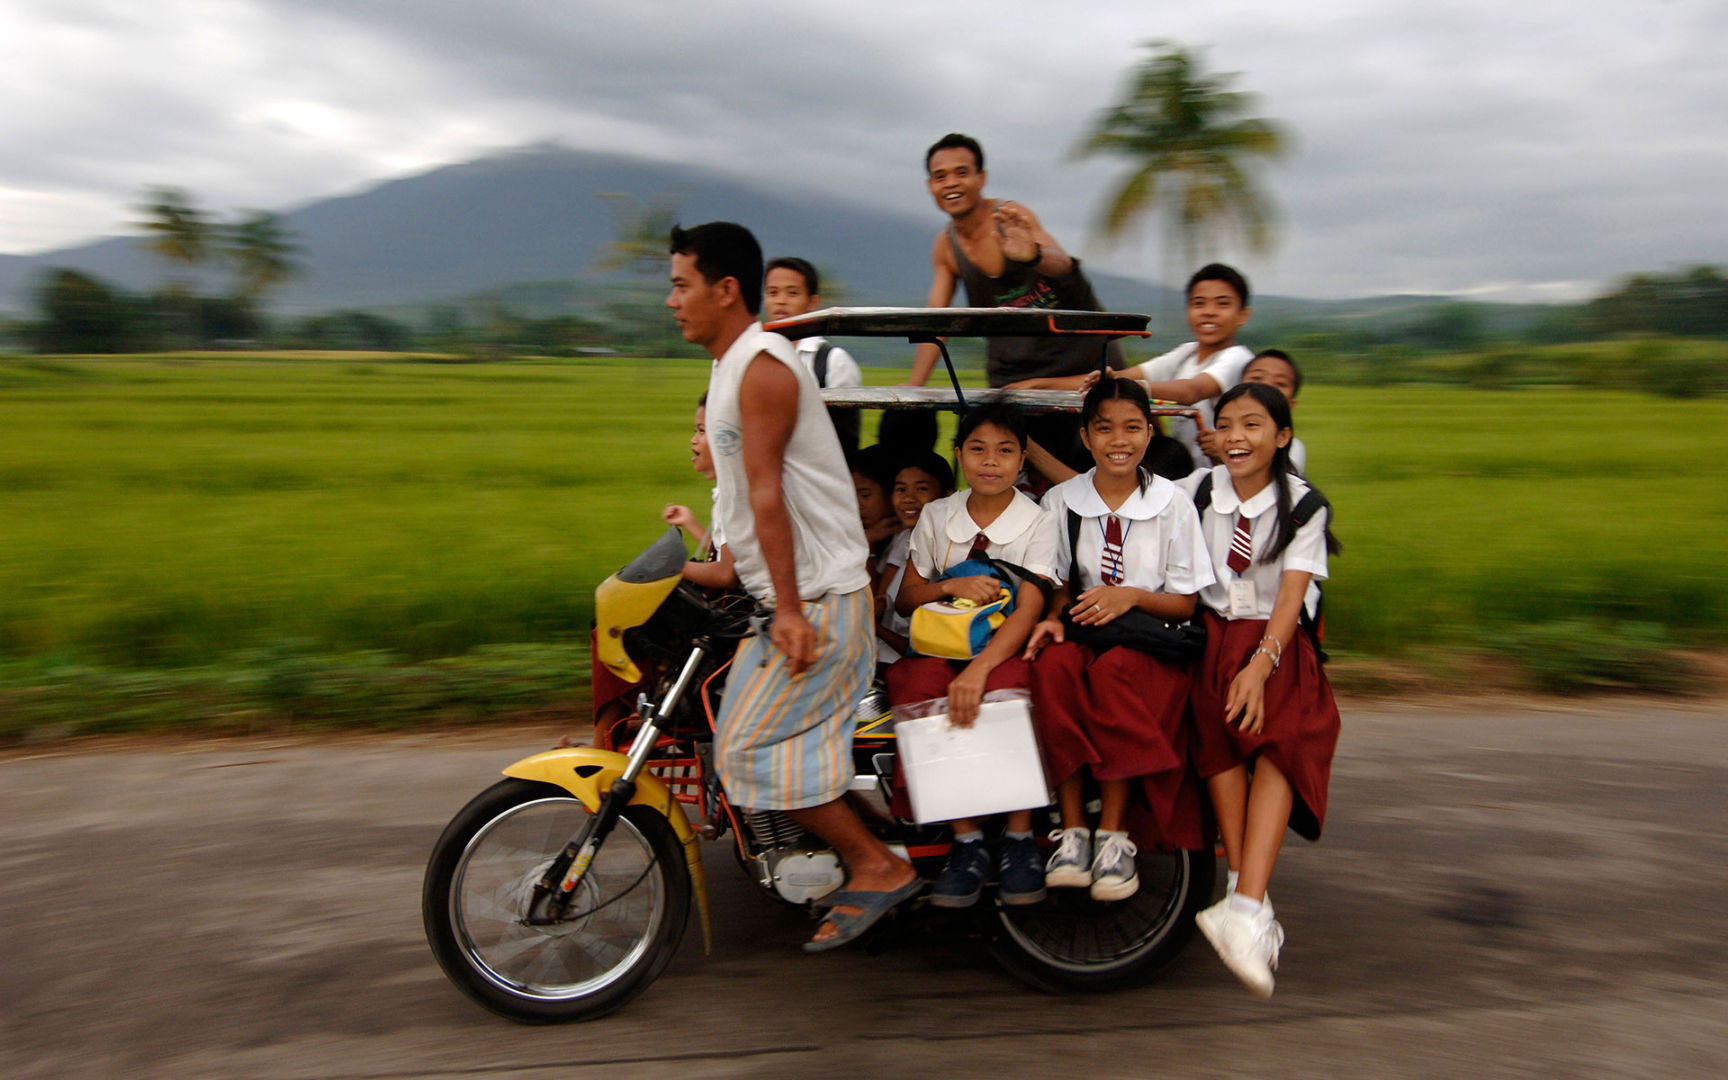 Children ride a motorcycle taxi to school